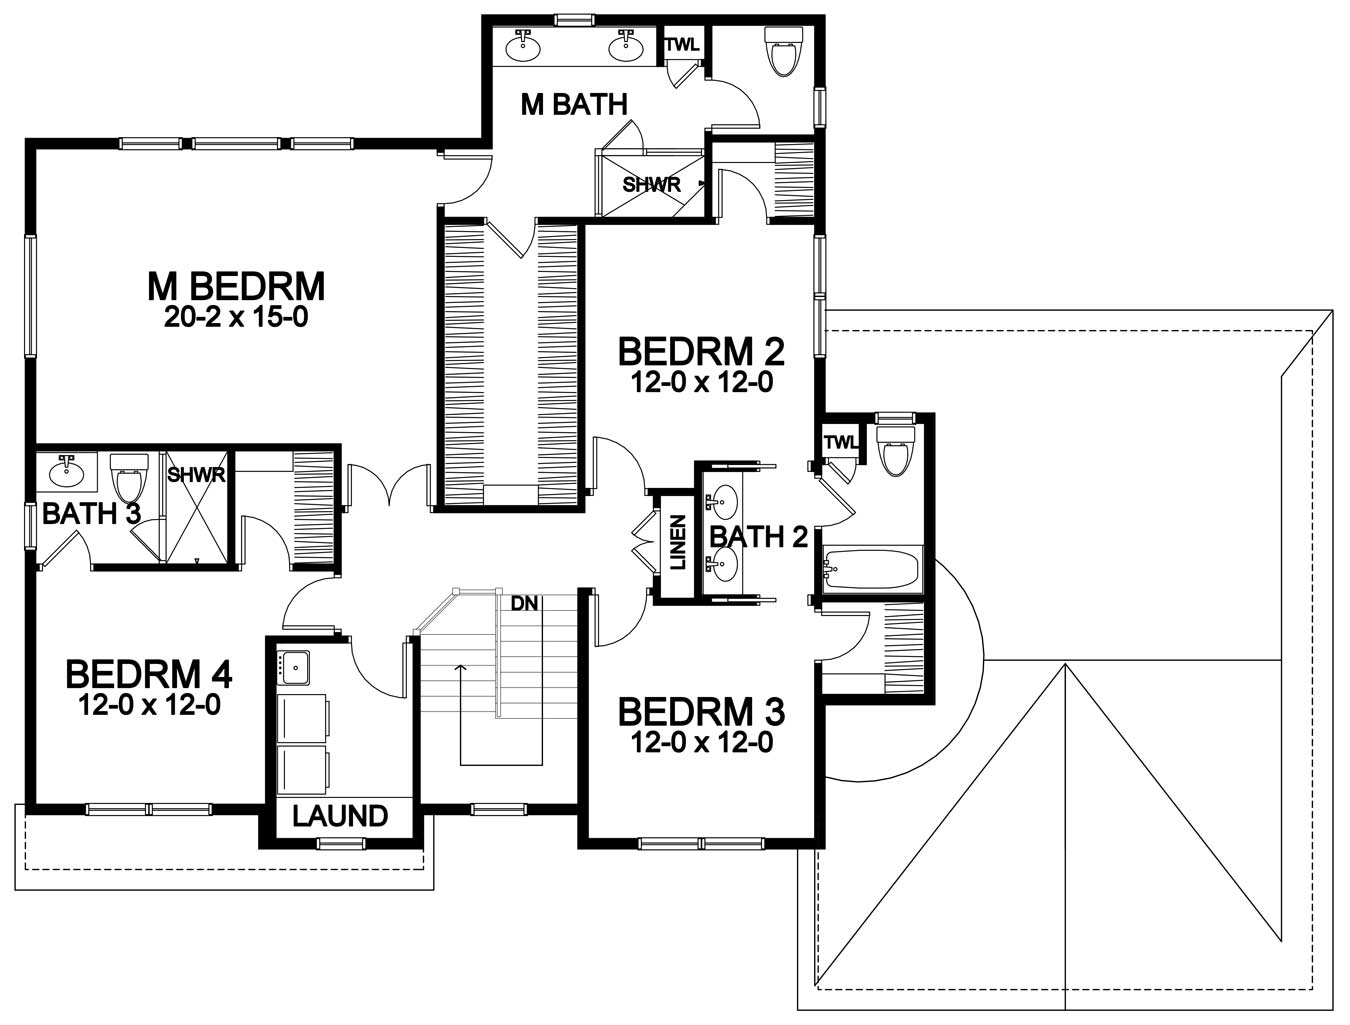 huge master suite and second floor laundry